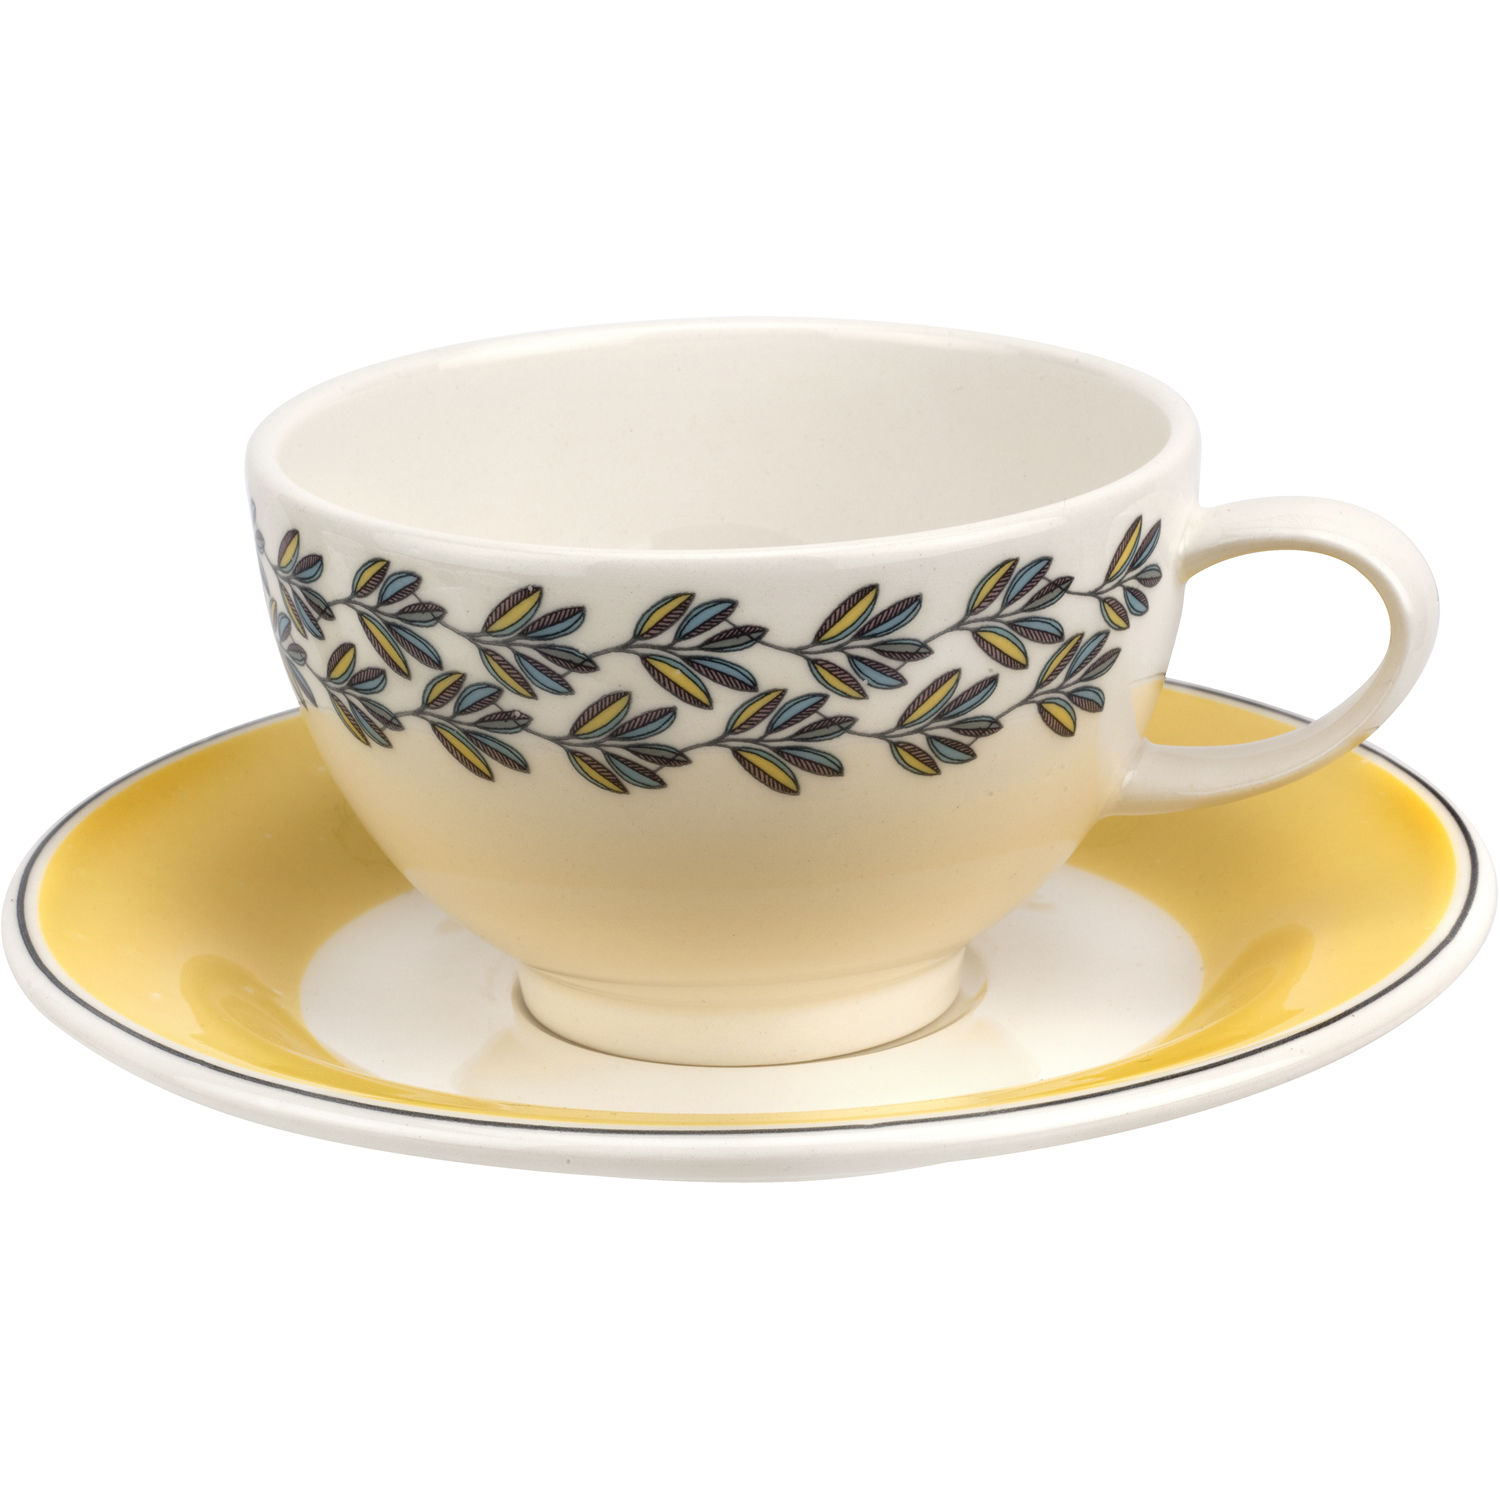 6ef025f9f977 Portmeirion Westerly Tea Cup   Saucer Yellow